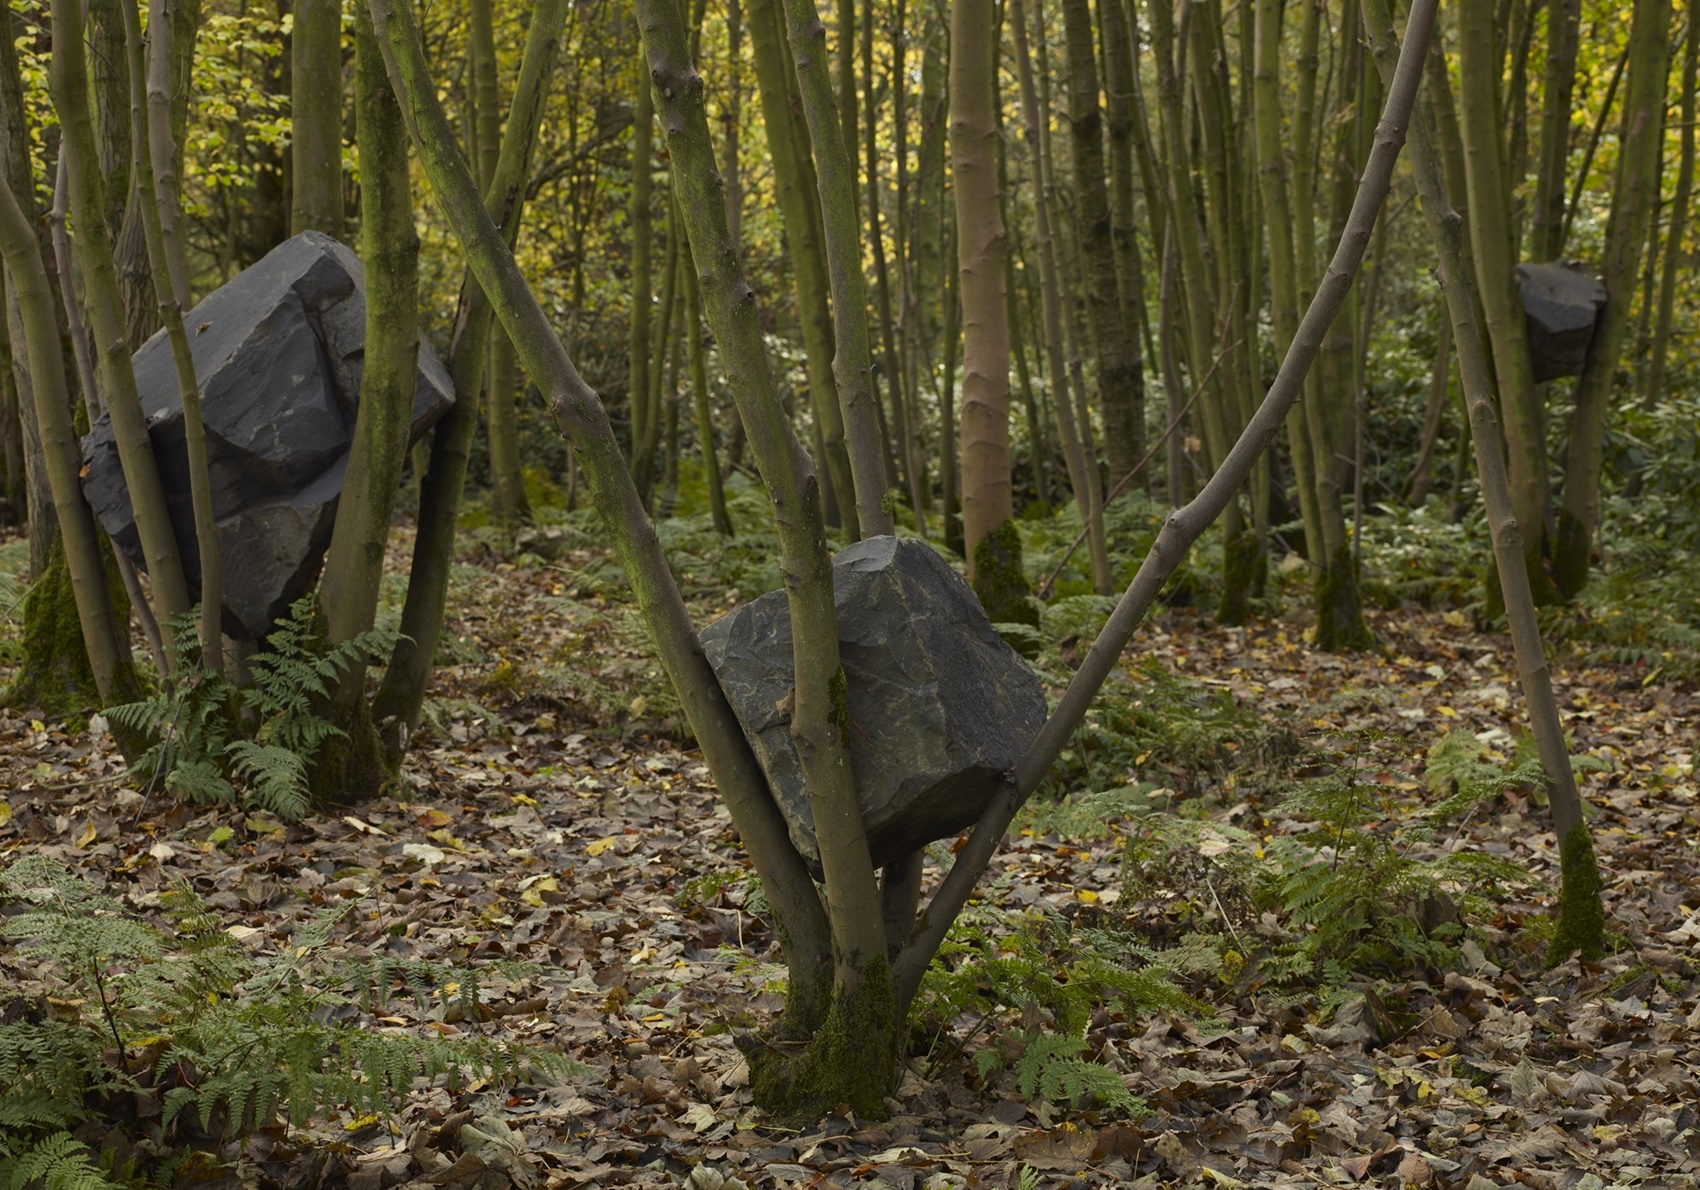 Andy Goldsworthy: Stone Coppice